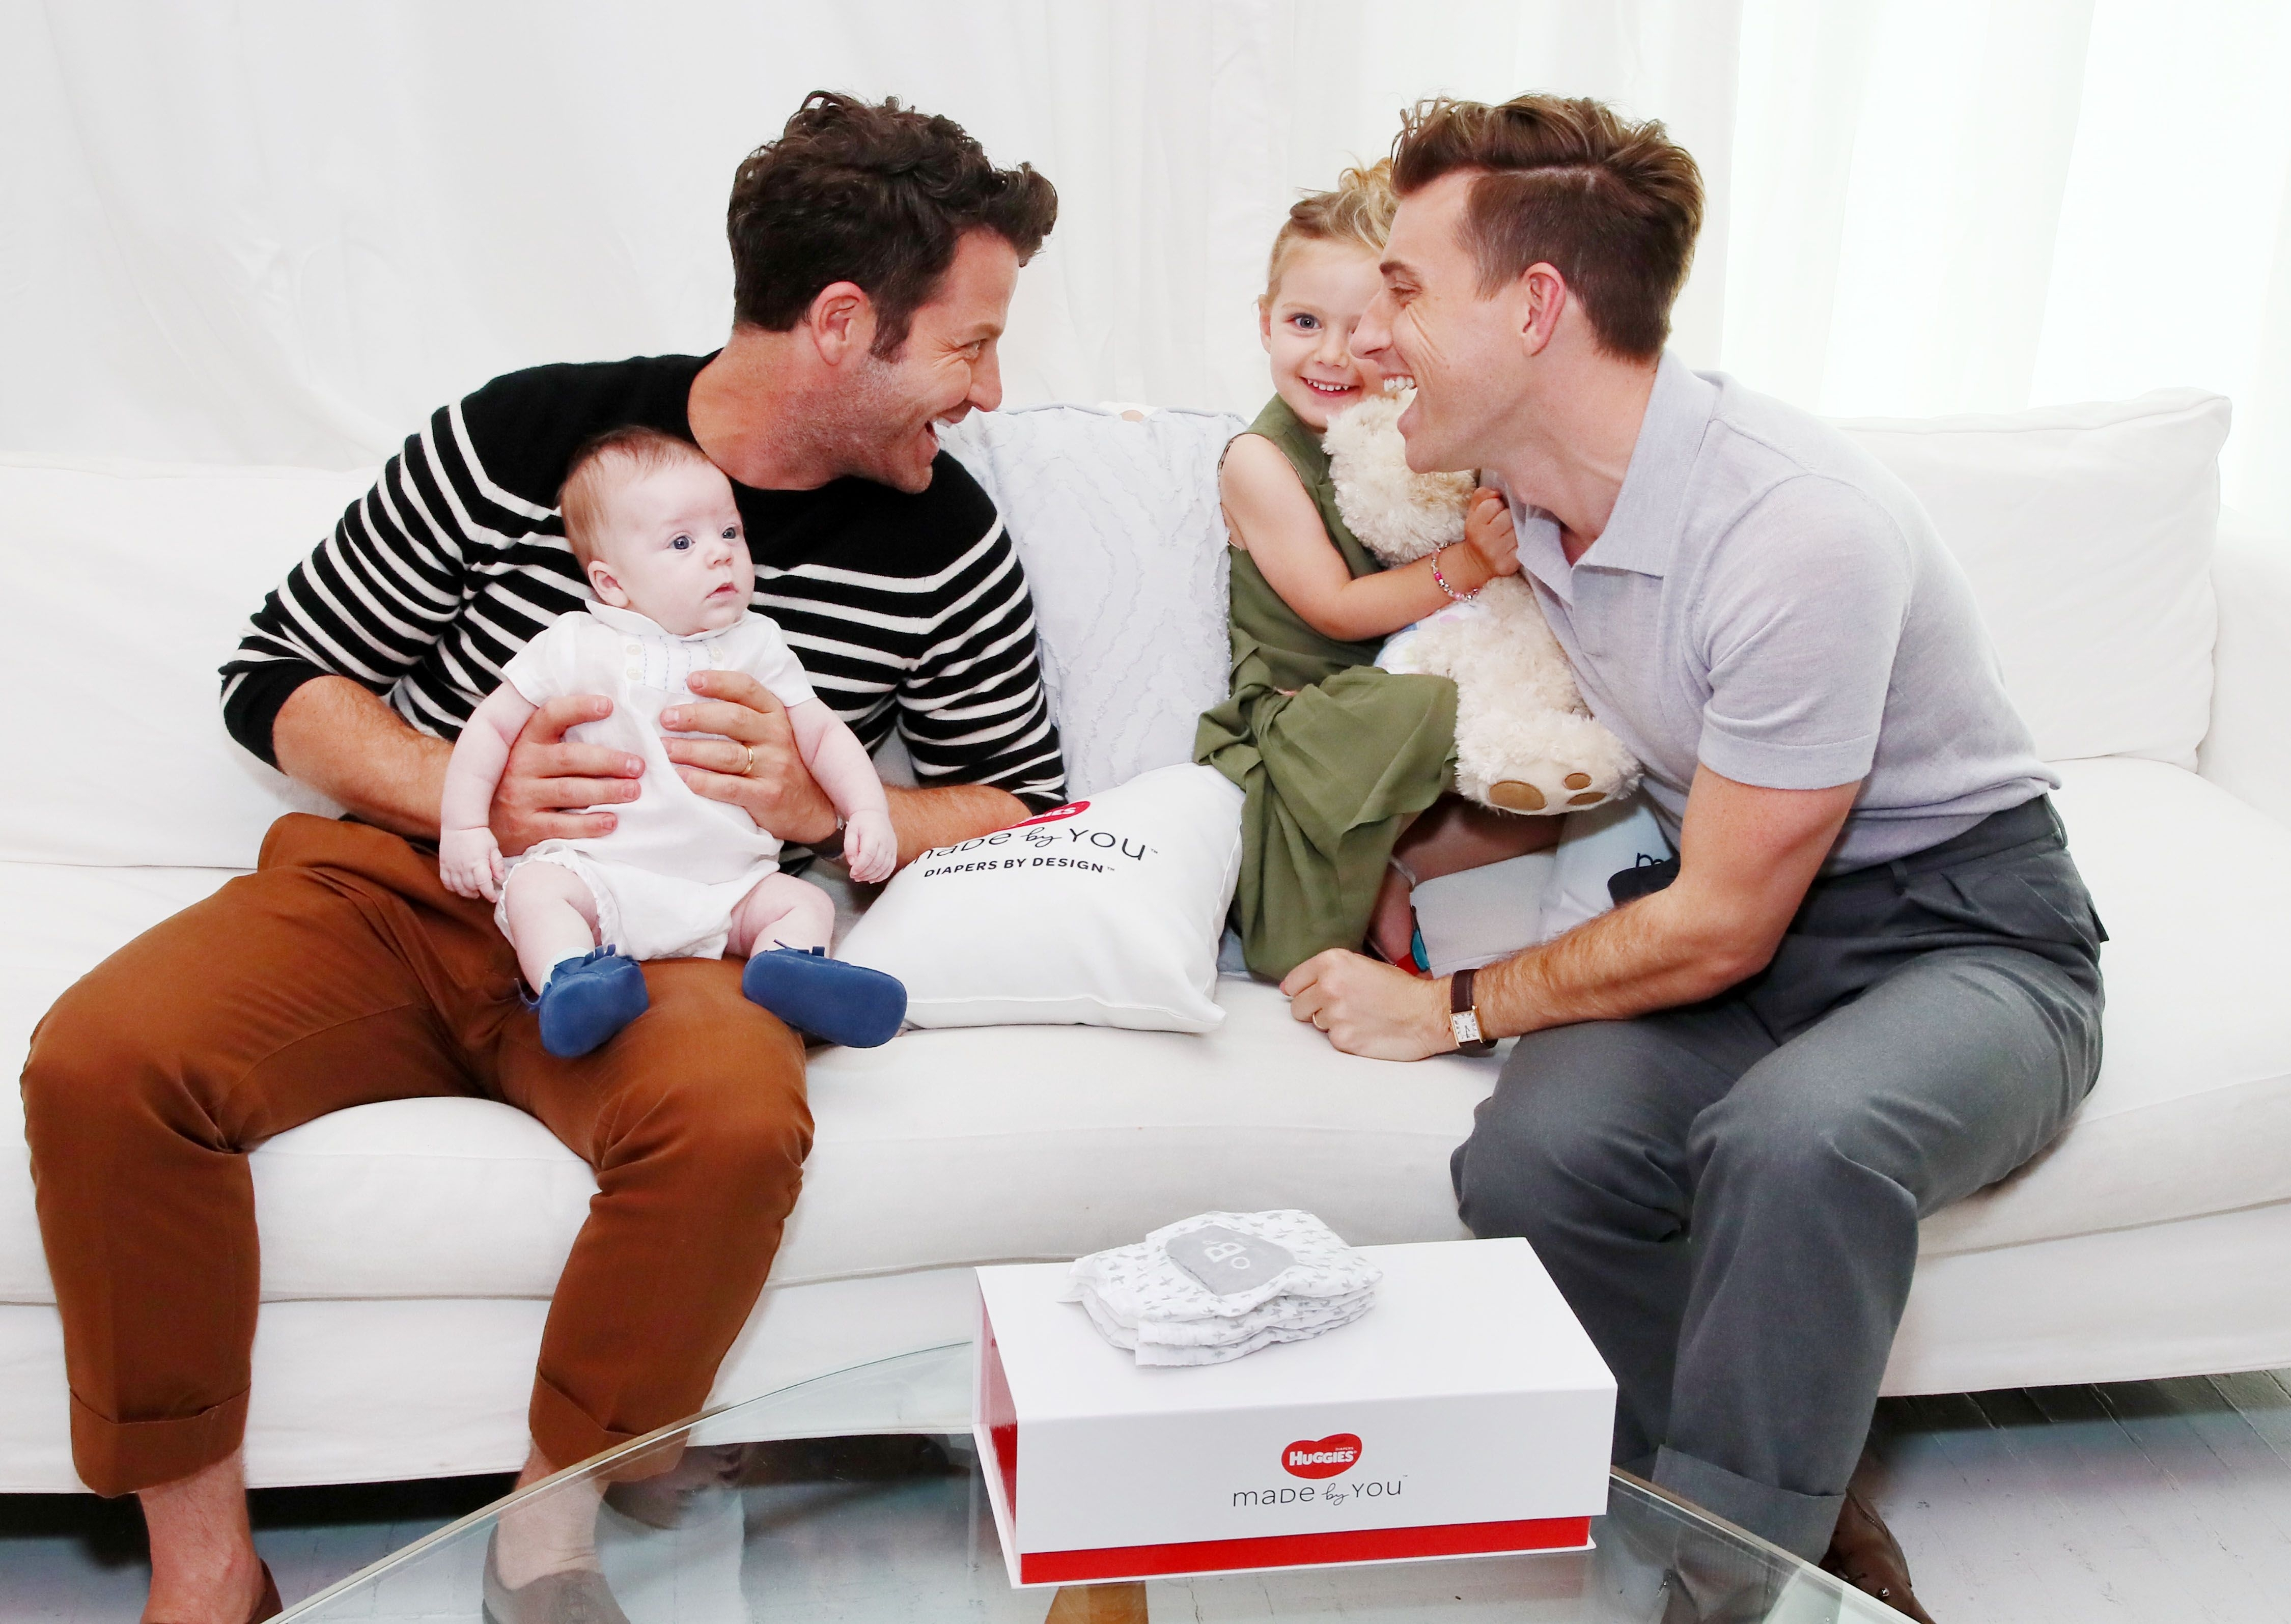 Best Of Nate Berkus And Jeremiah Brent's New Upholstery Collection Regarding Whitley 3 Piece Sectionals By Nate Berkus And Jeremiah Brent (Image 1 of 25)